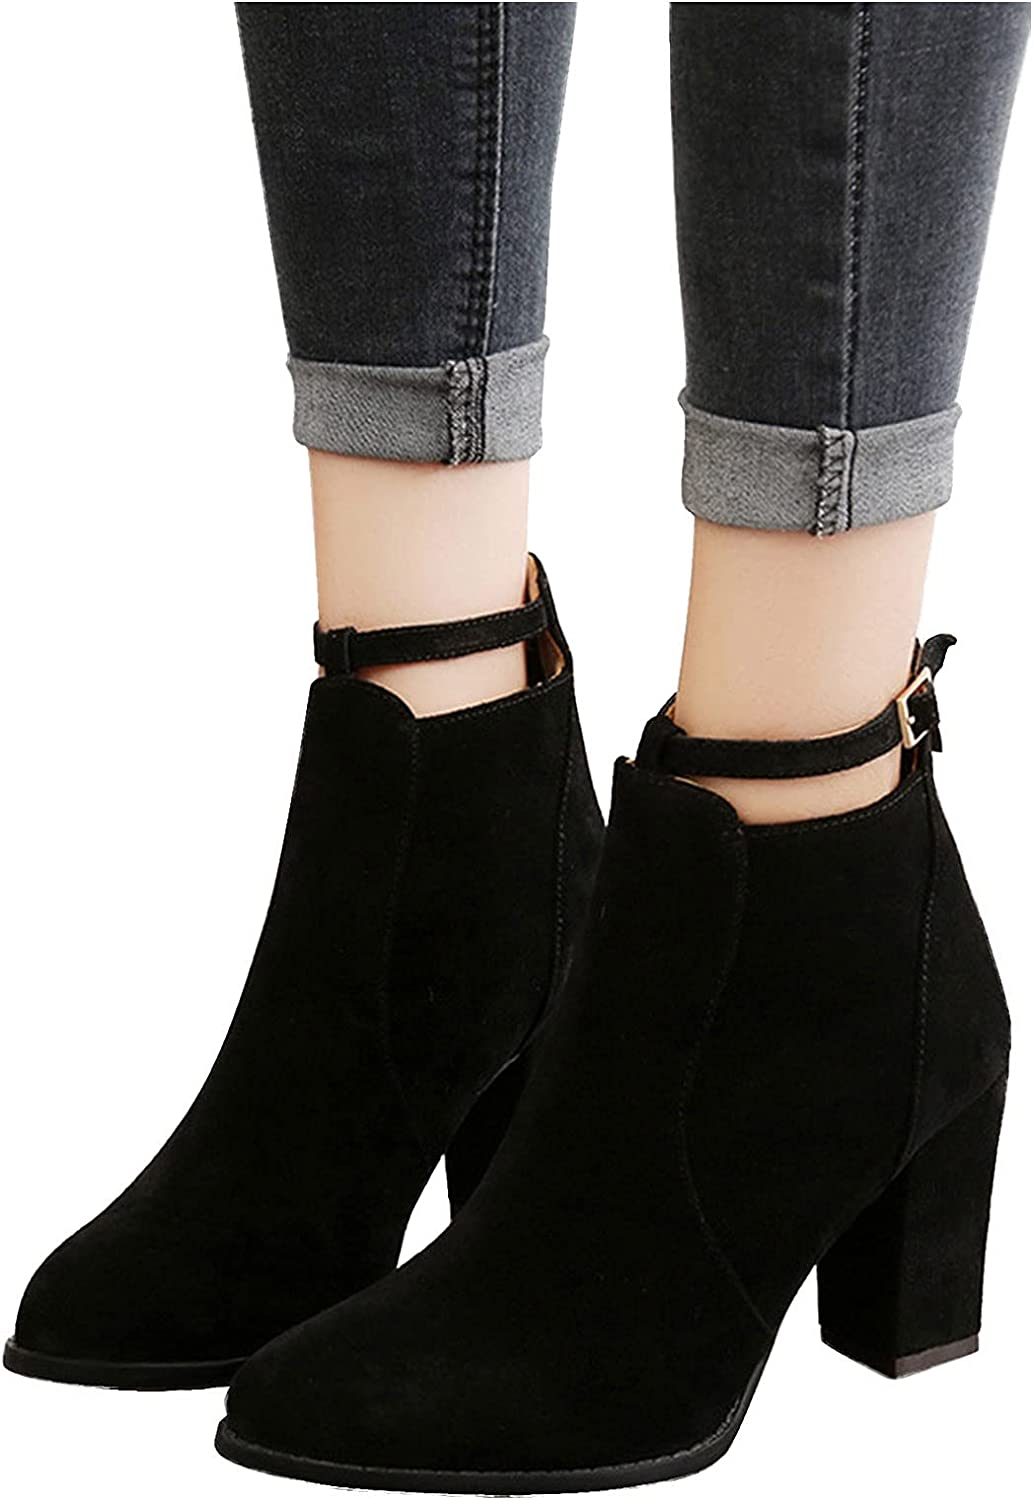 Gibobby Ankle Boots for Women,Womens Ankle Short Boots Pointed Toe Buckle Zipper Up Boots High Heel Cowgirl Boots Causal Shoes